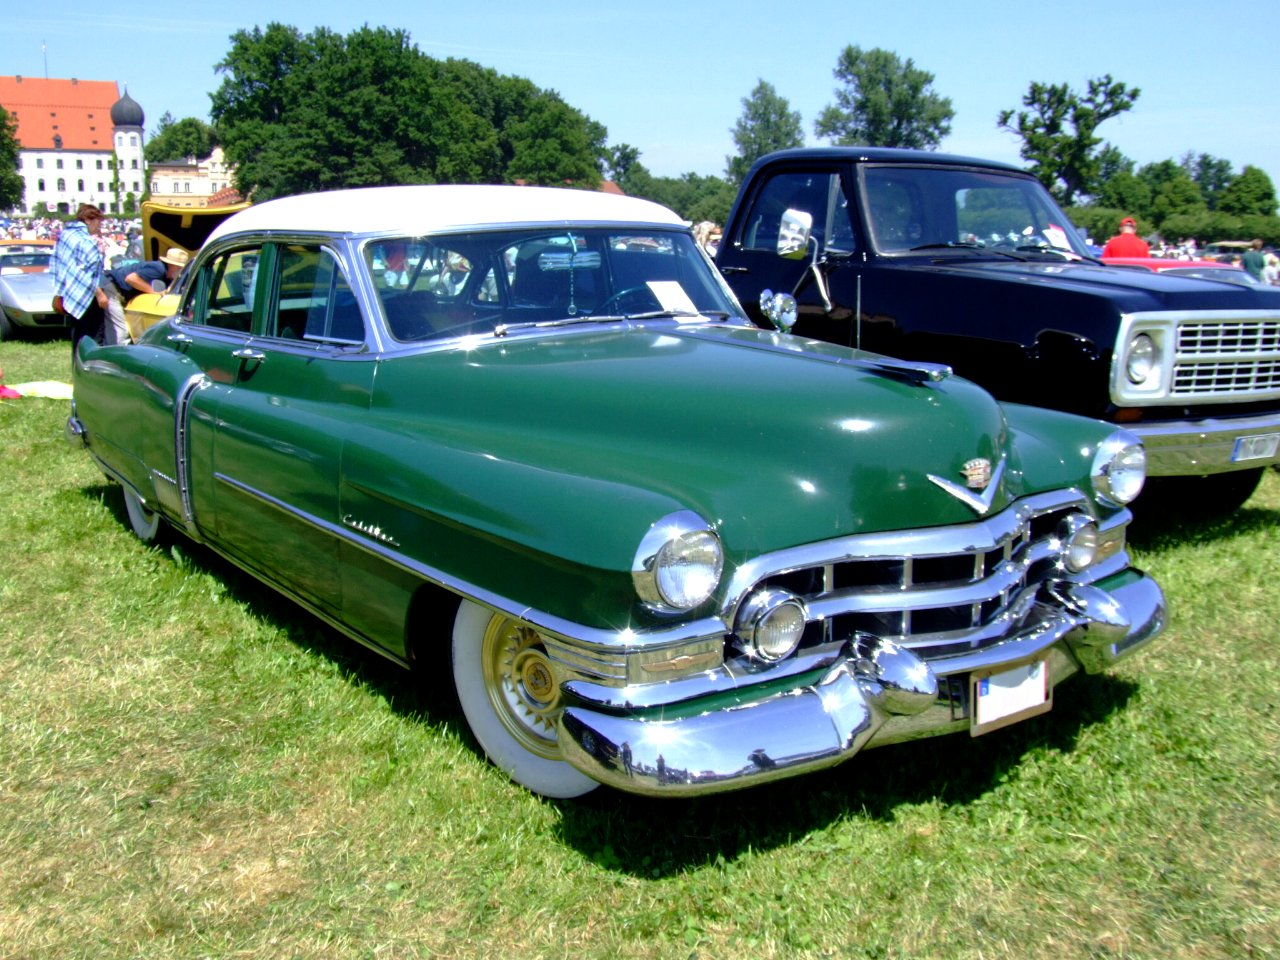 1951 Cadillac Fleetwood 60 Special - Classic Car Price Guide